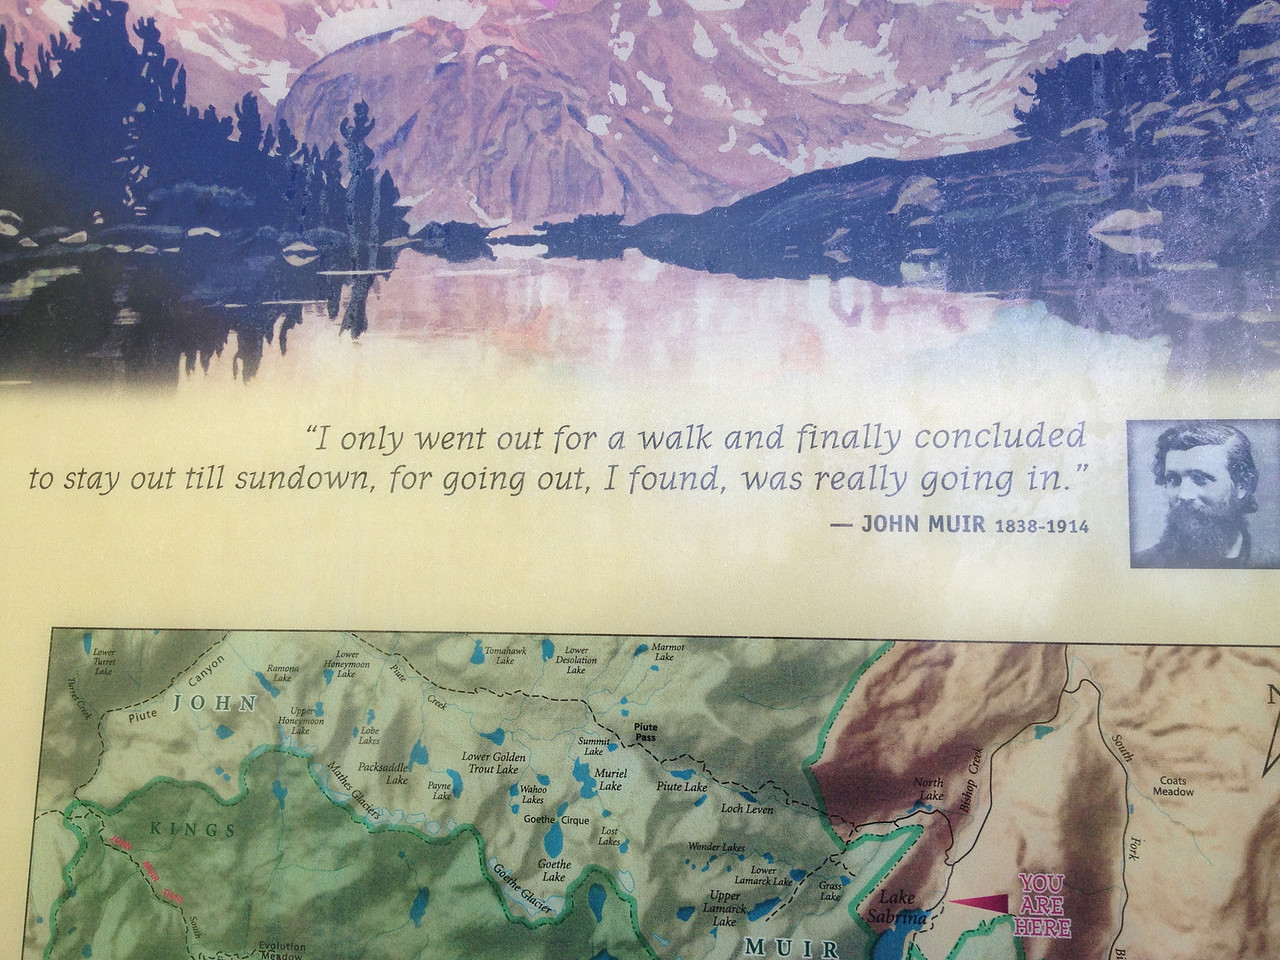 I found this is at the Lake Sabrina trailhead on my way to the Ionian Basin in the Eastern Sierra near Bishop, CA.  It sums up my current spiritual path and life nicely.